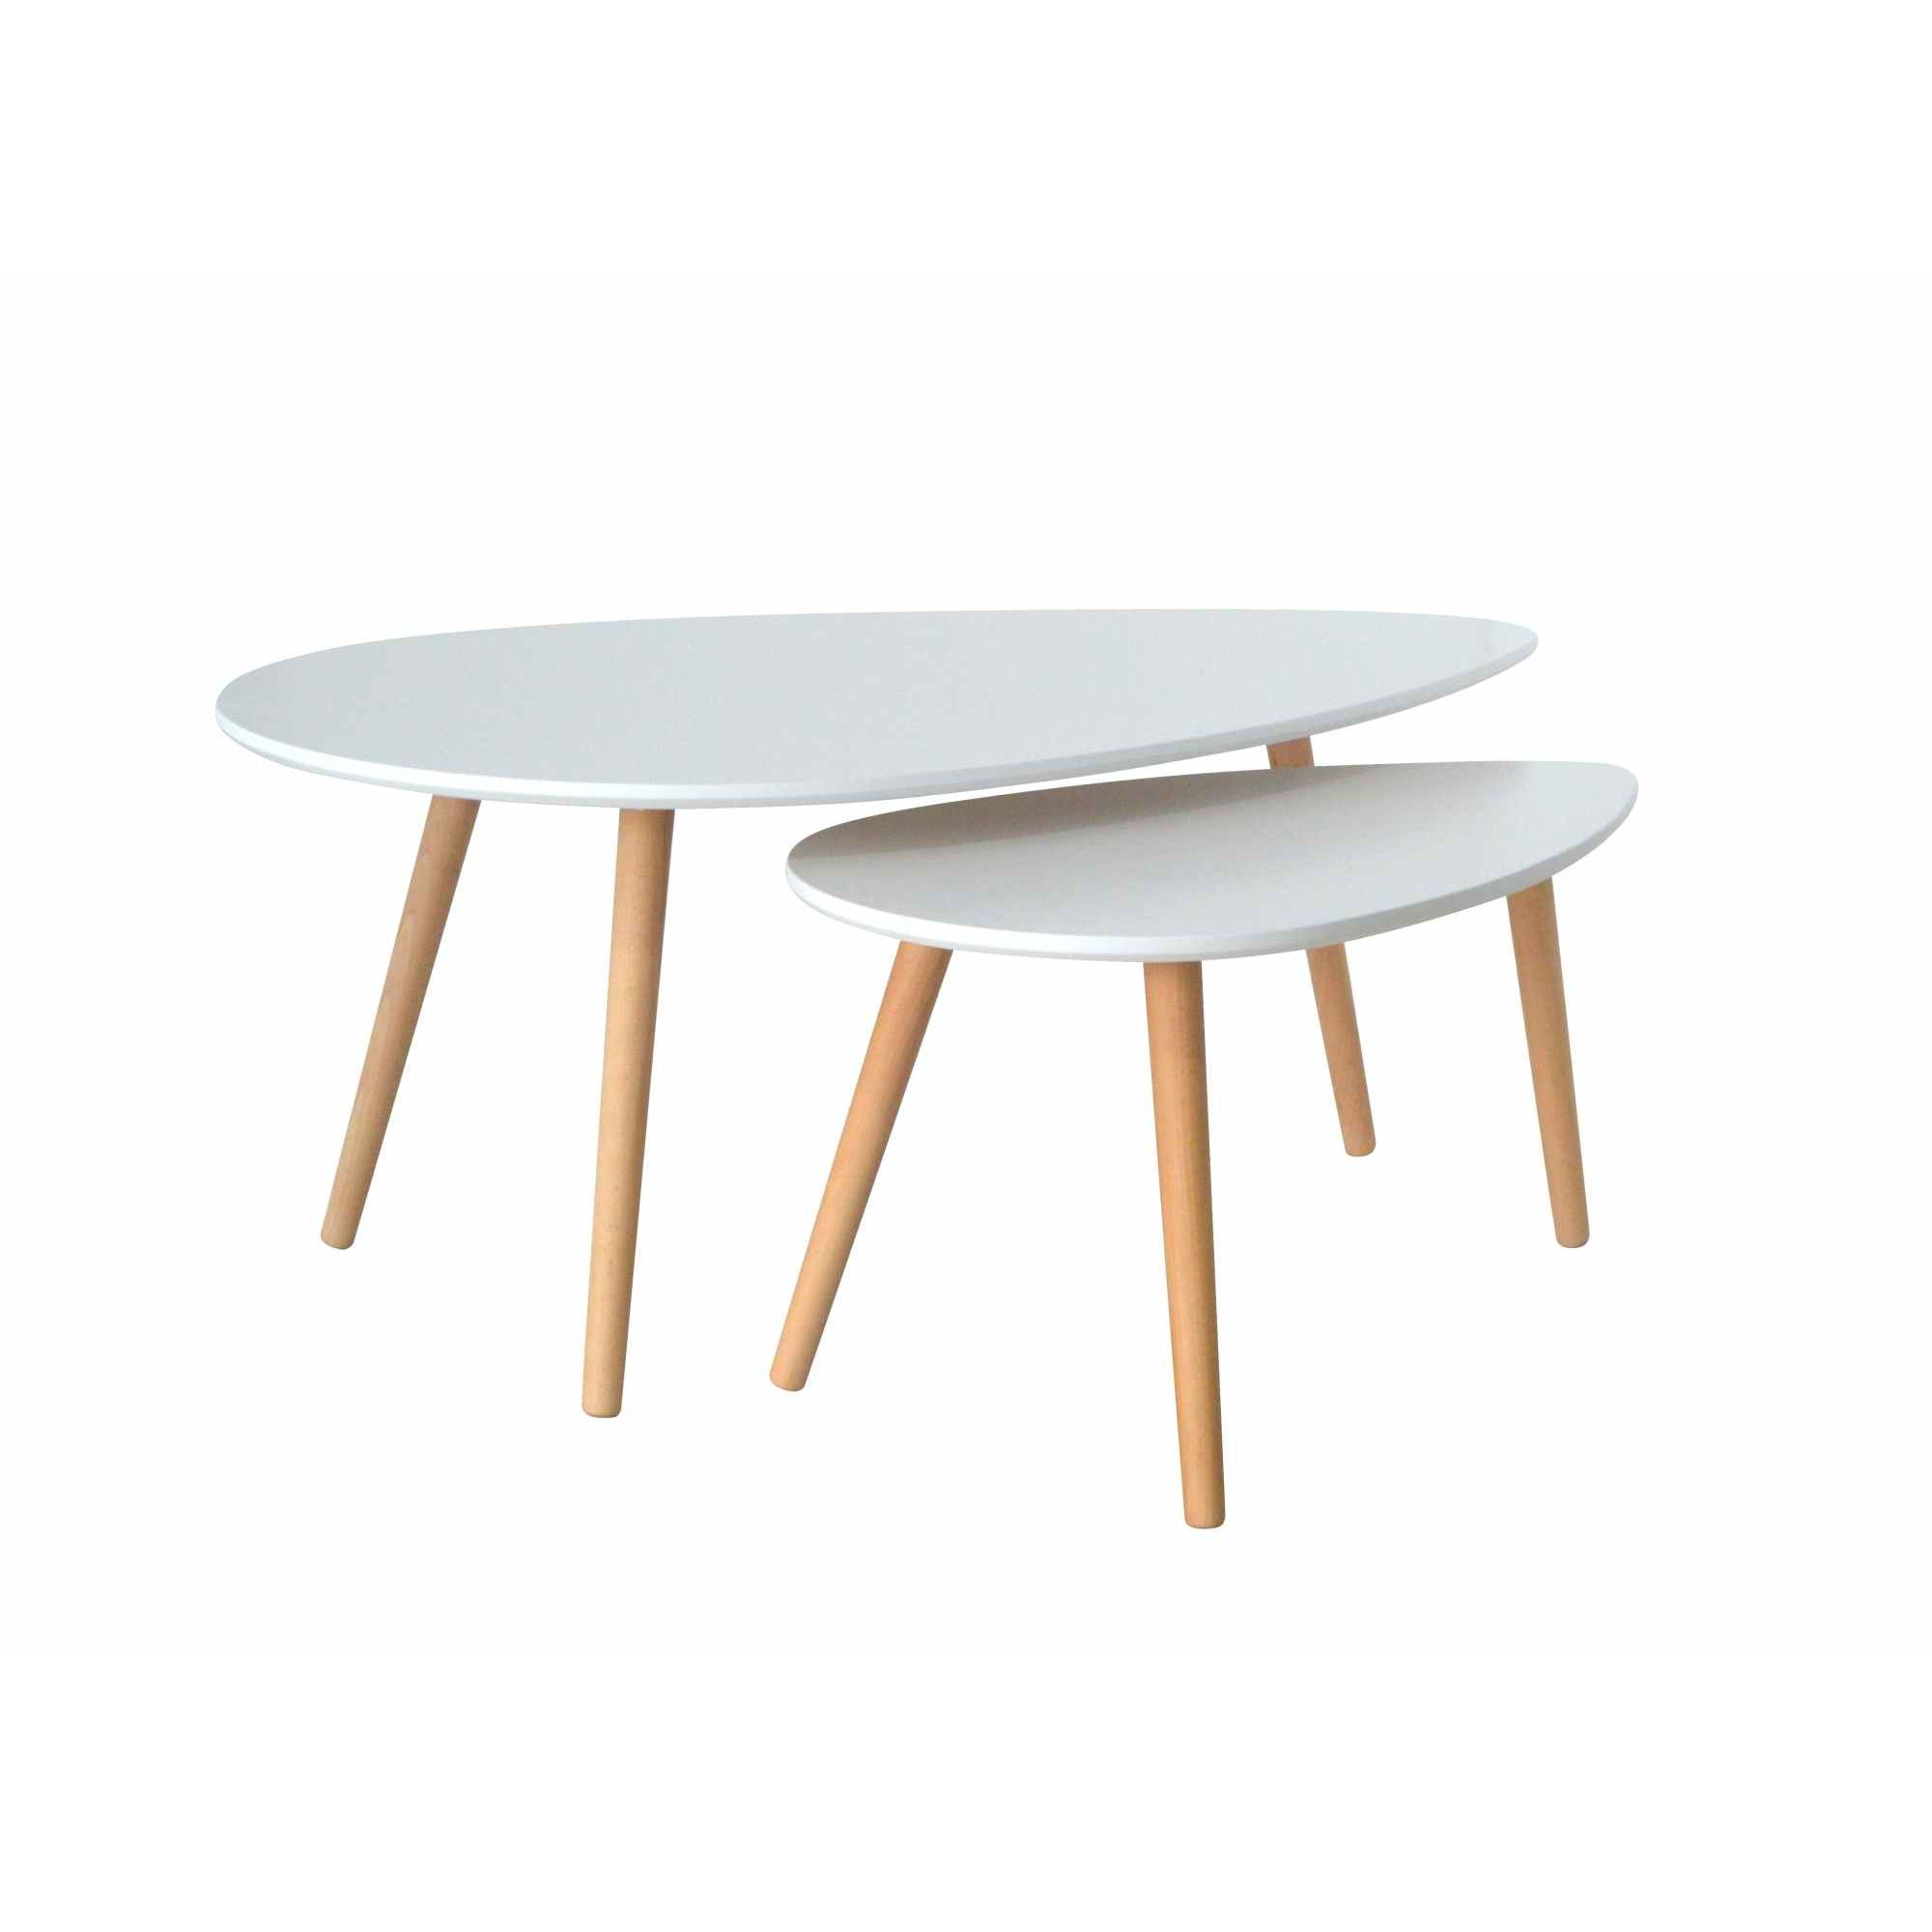 Deco in paris table basse scandinave blanc avesta avesta table base blanc - Table basse ovale scandinave ...